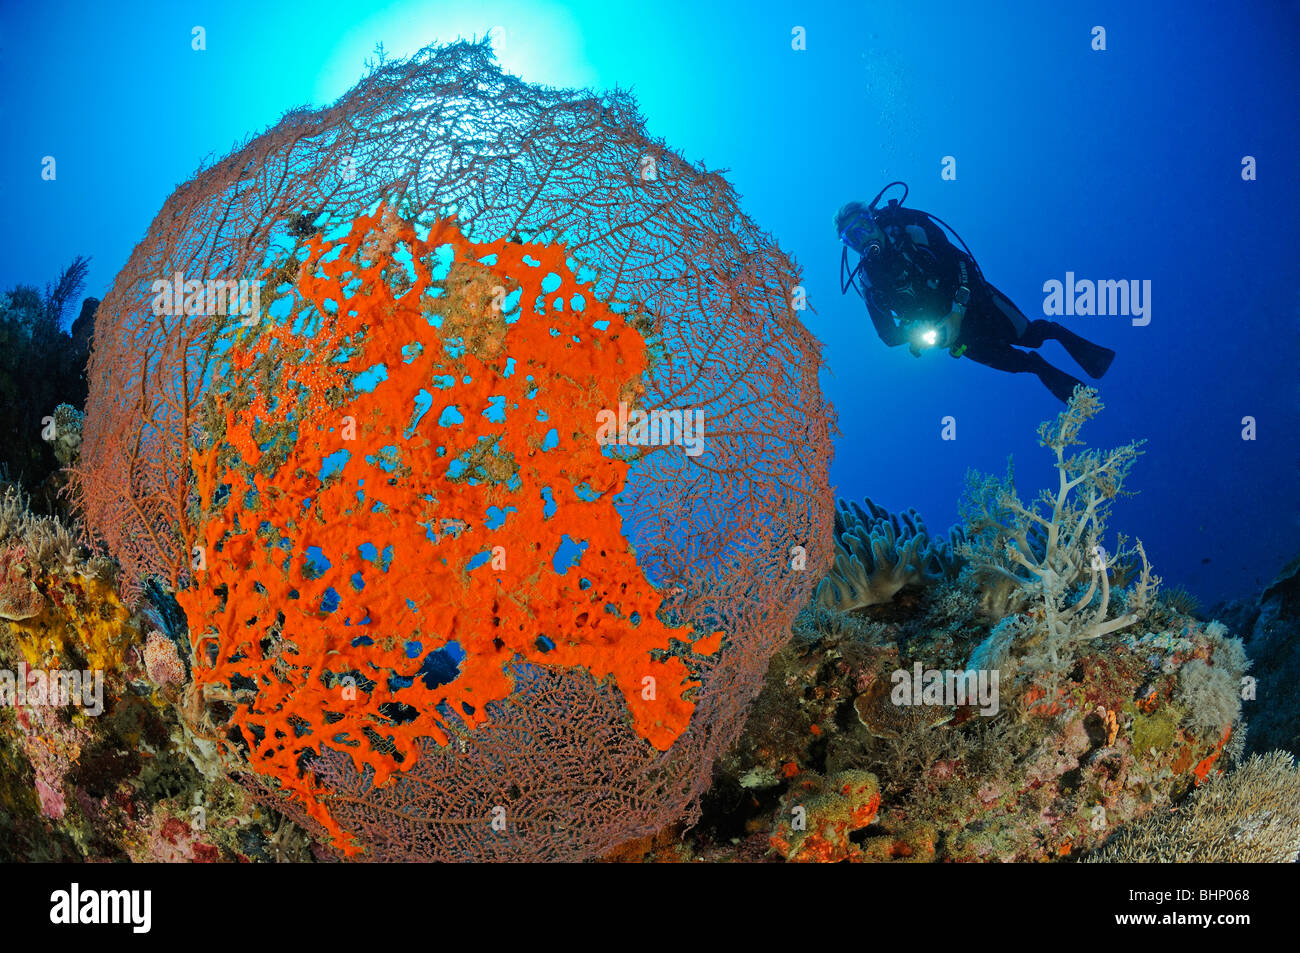 Latrunculia magnifica, scuba diver with giant sea fan and red fire sponge, Close Encounters, Pemuteran, Bali - Stock Image